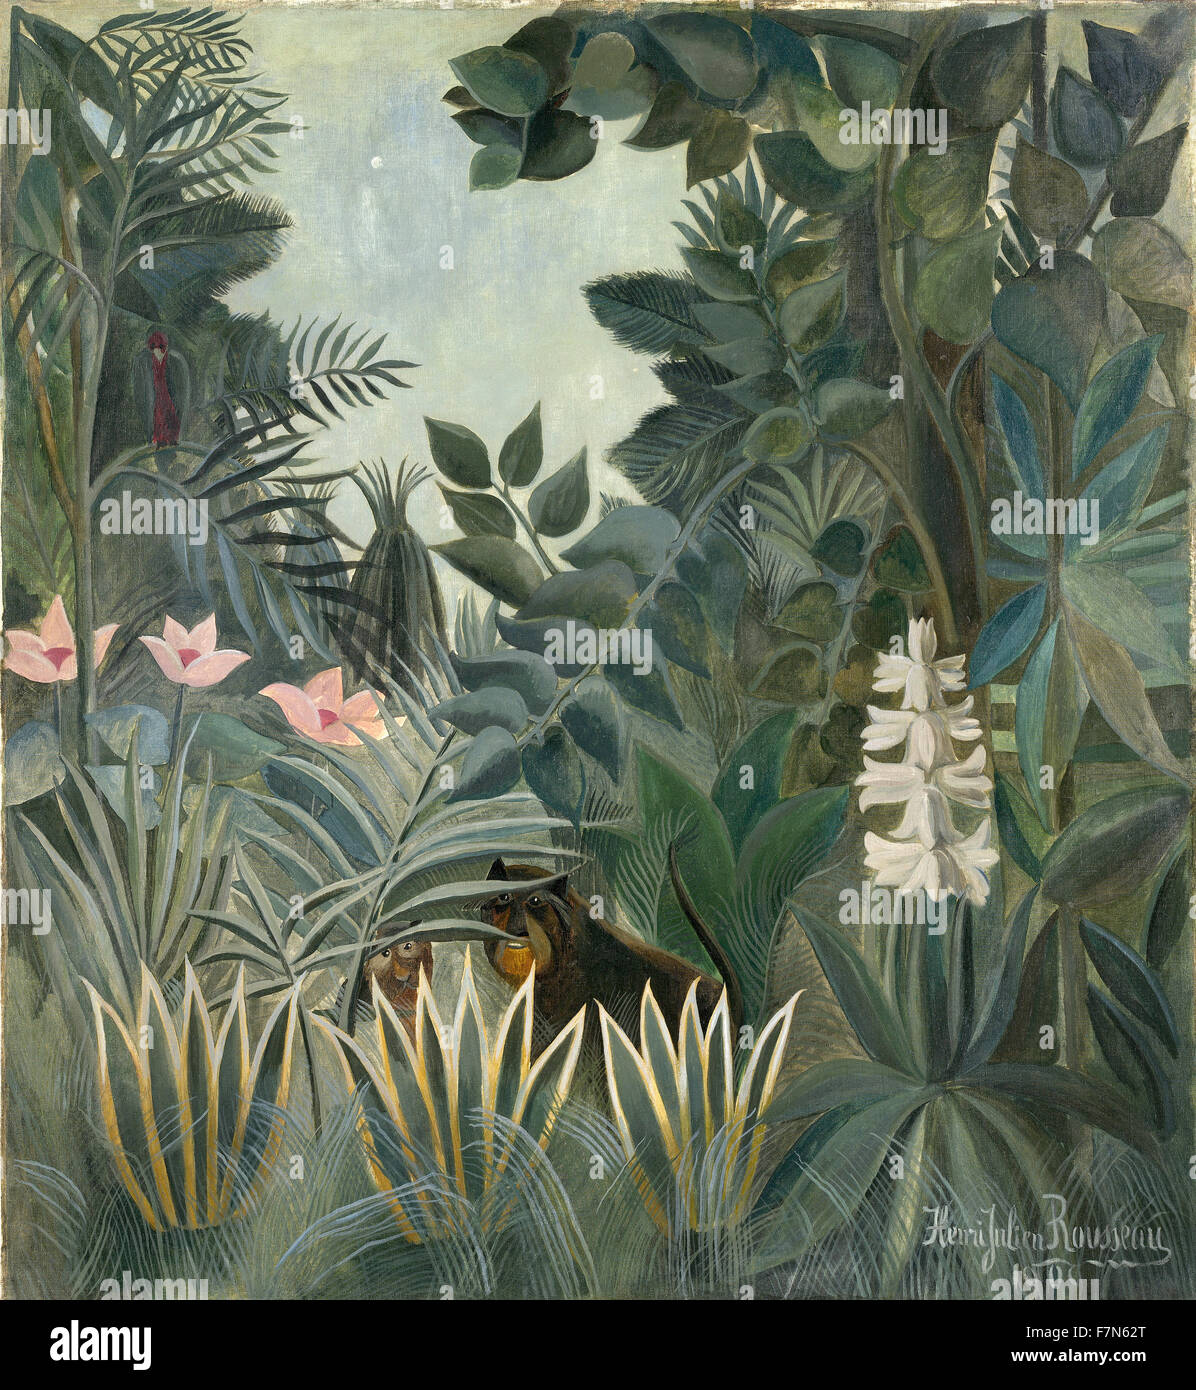 Henri Rousseau - Le Douanier Rousseau - The Equatorial Jungle - Stock Image